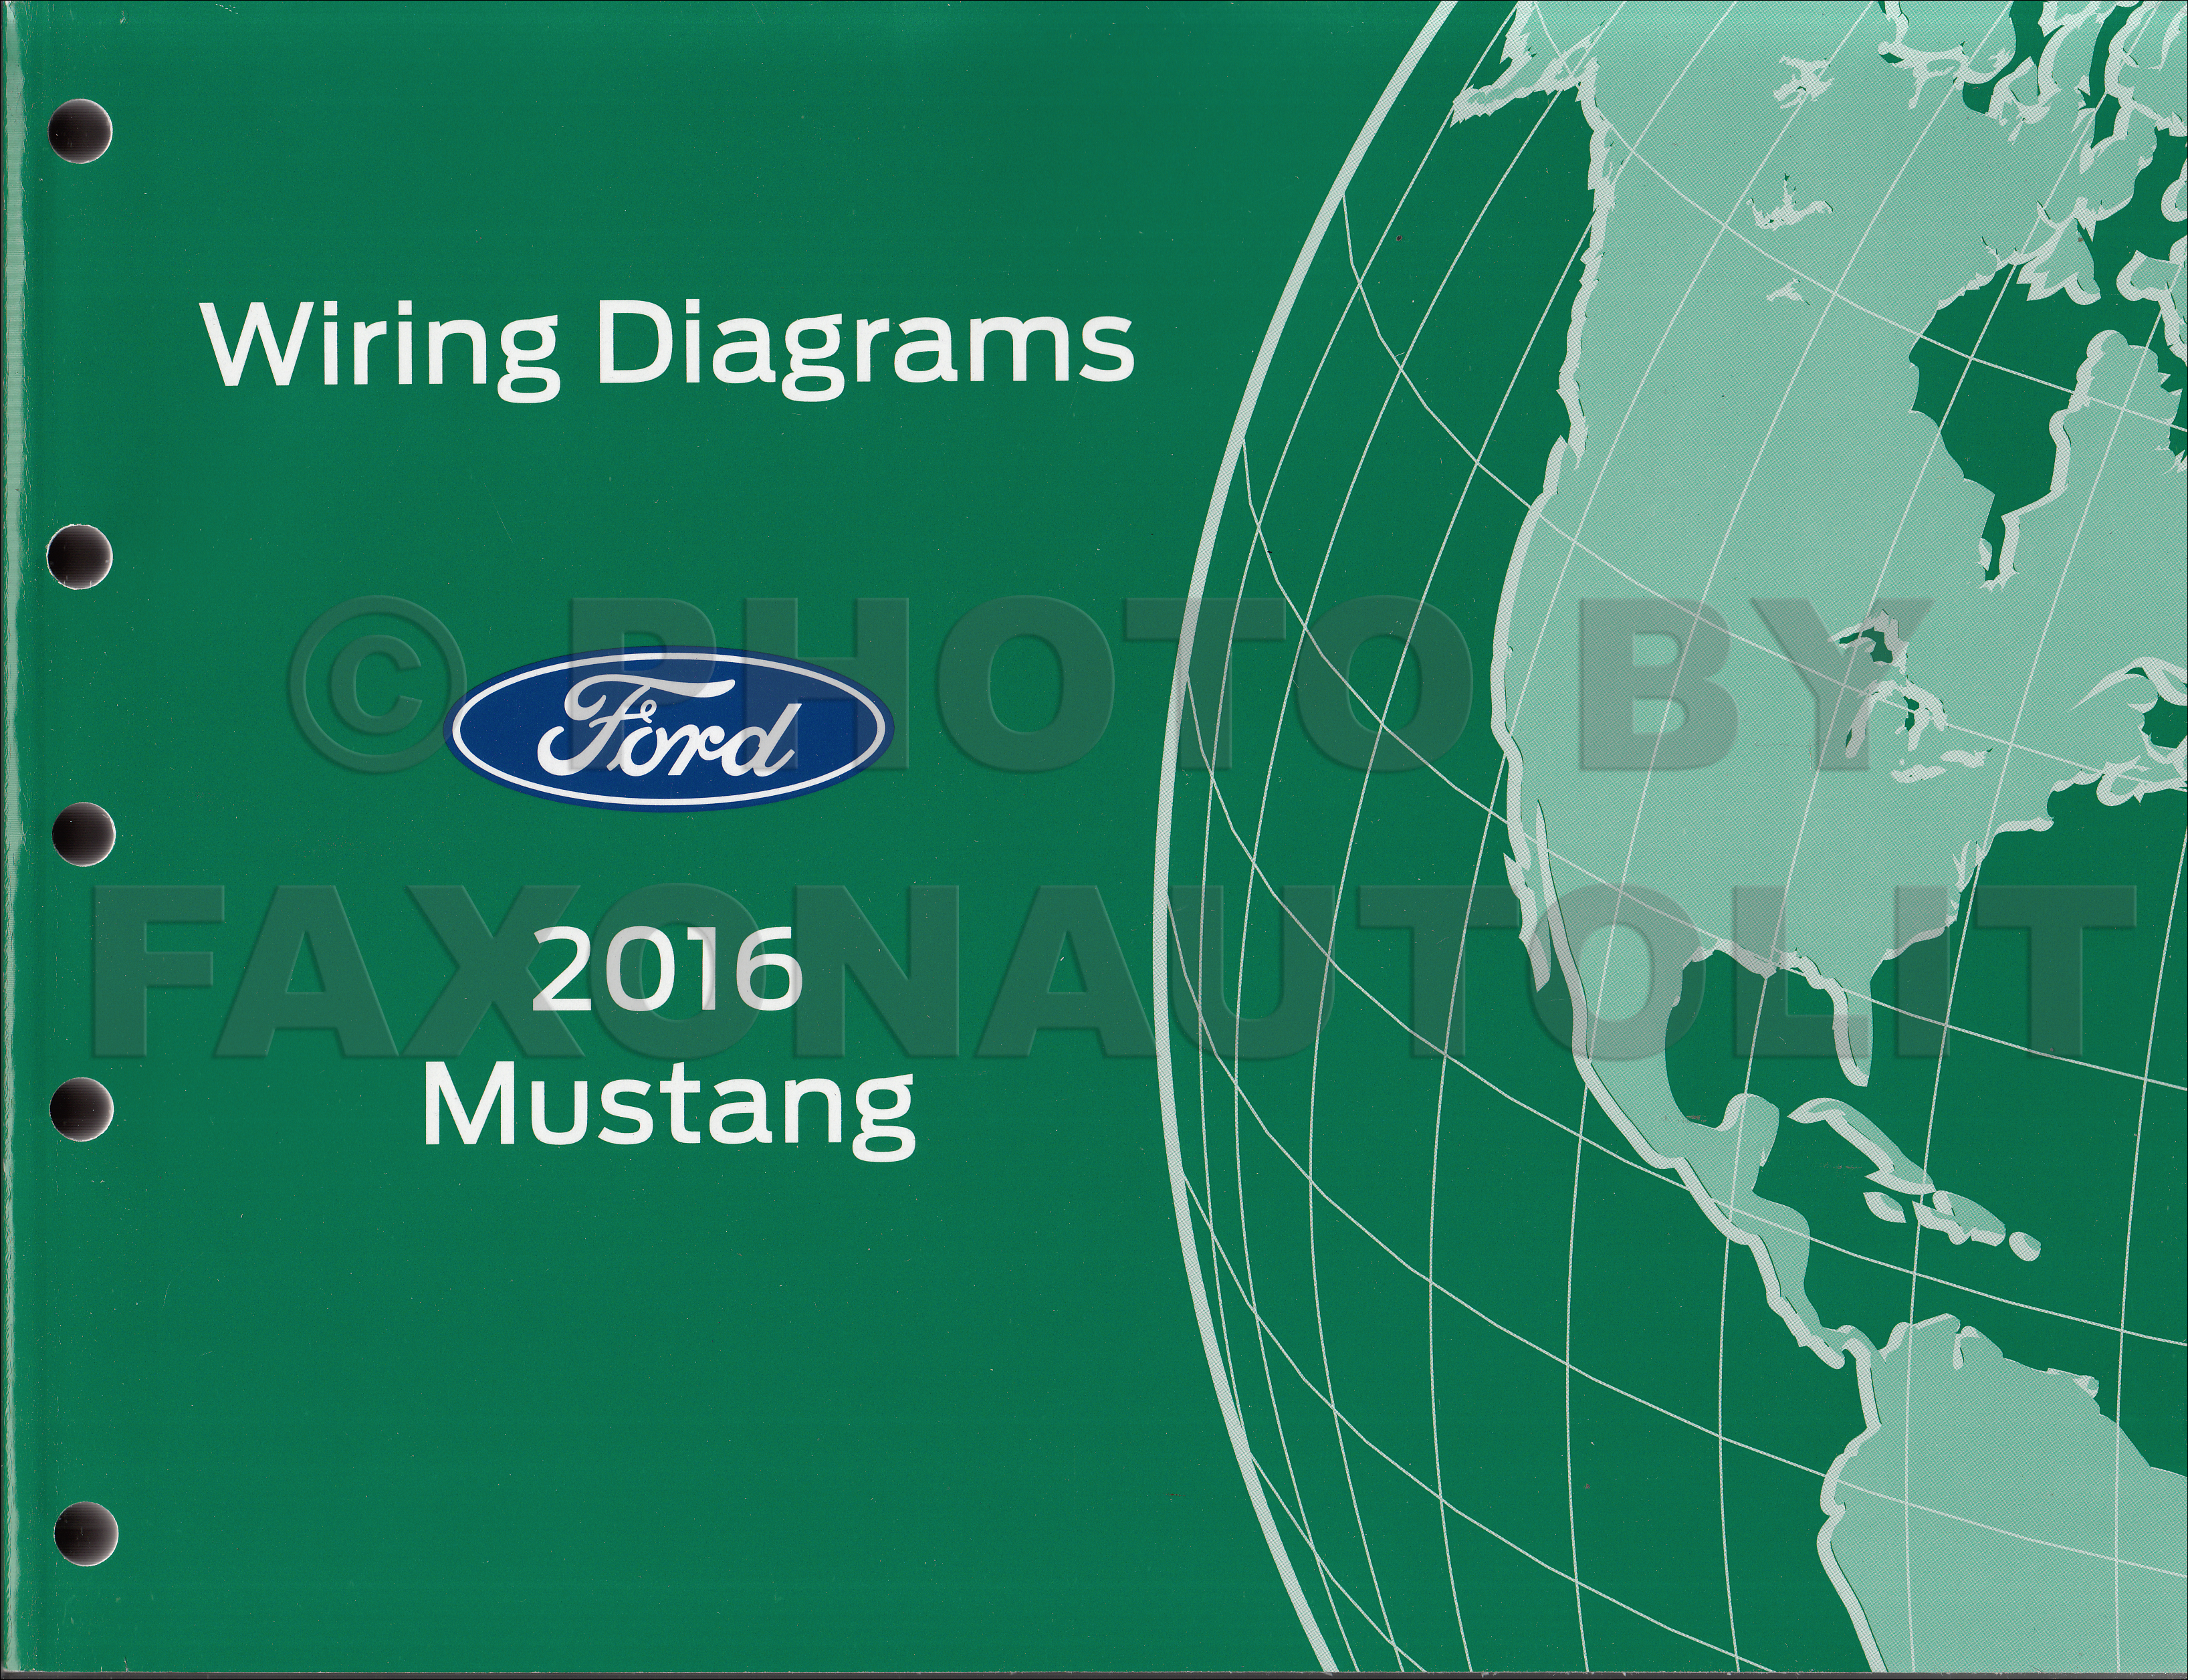 2016FordMustangOWD 2016 ford mustang wiring diagram manual original ford mustang wiring diagram at arjmand.co